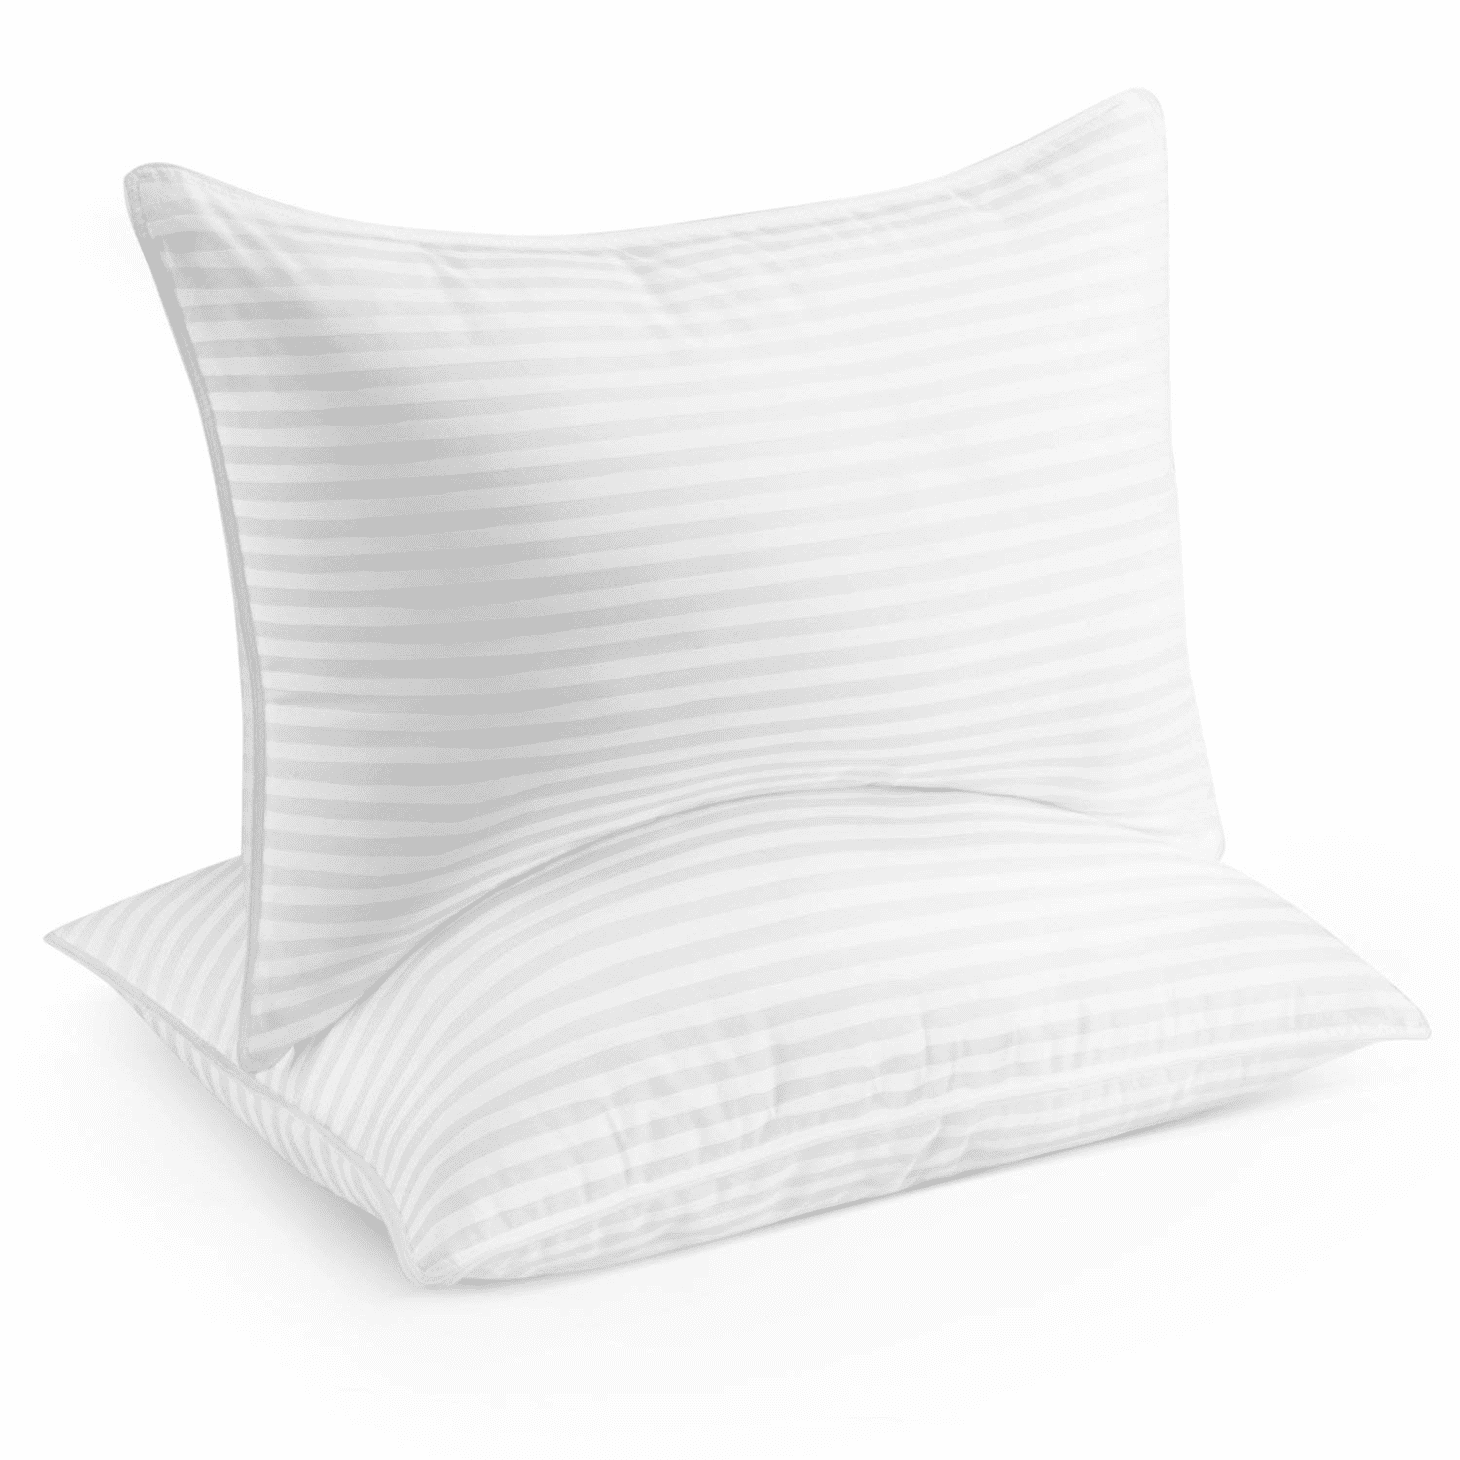 Best Pillows For Sleeping 2020 Most Comfortable Bed Pillows